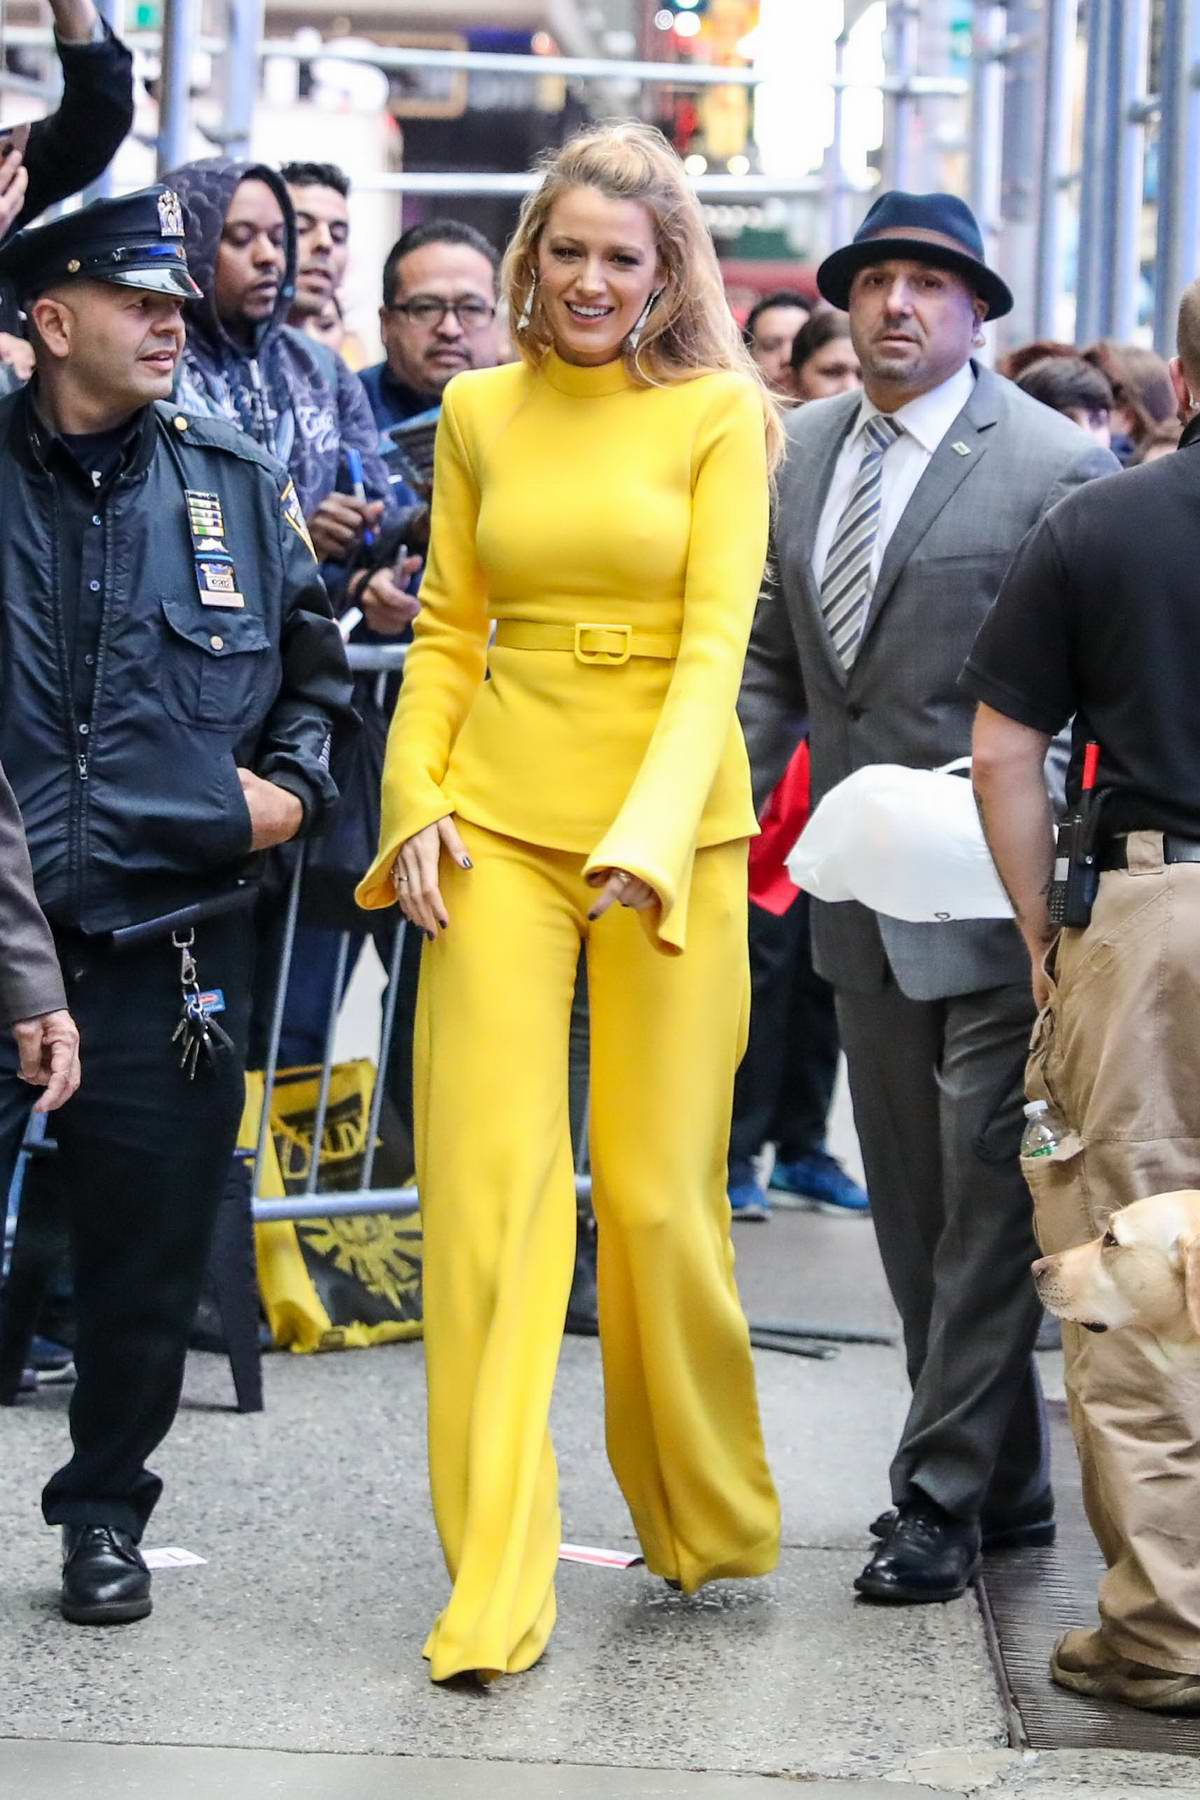 Blake Lively is seen outside a television studio in Times Square area in New York City